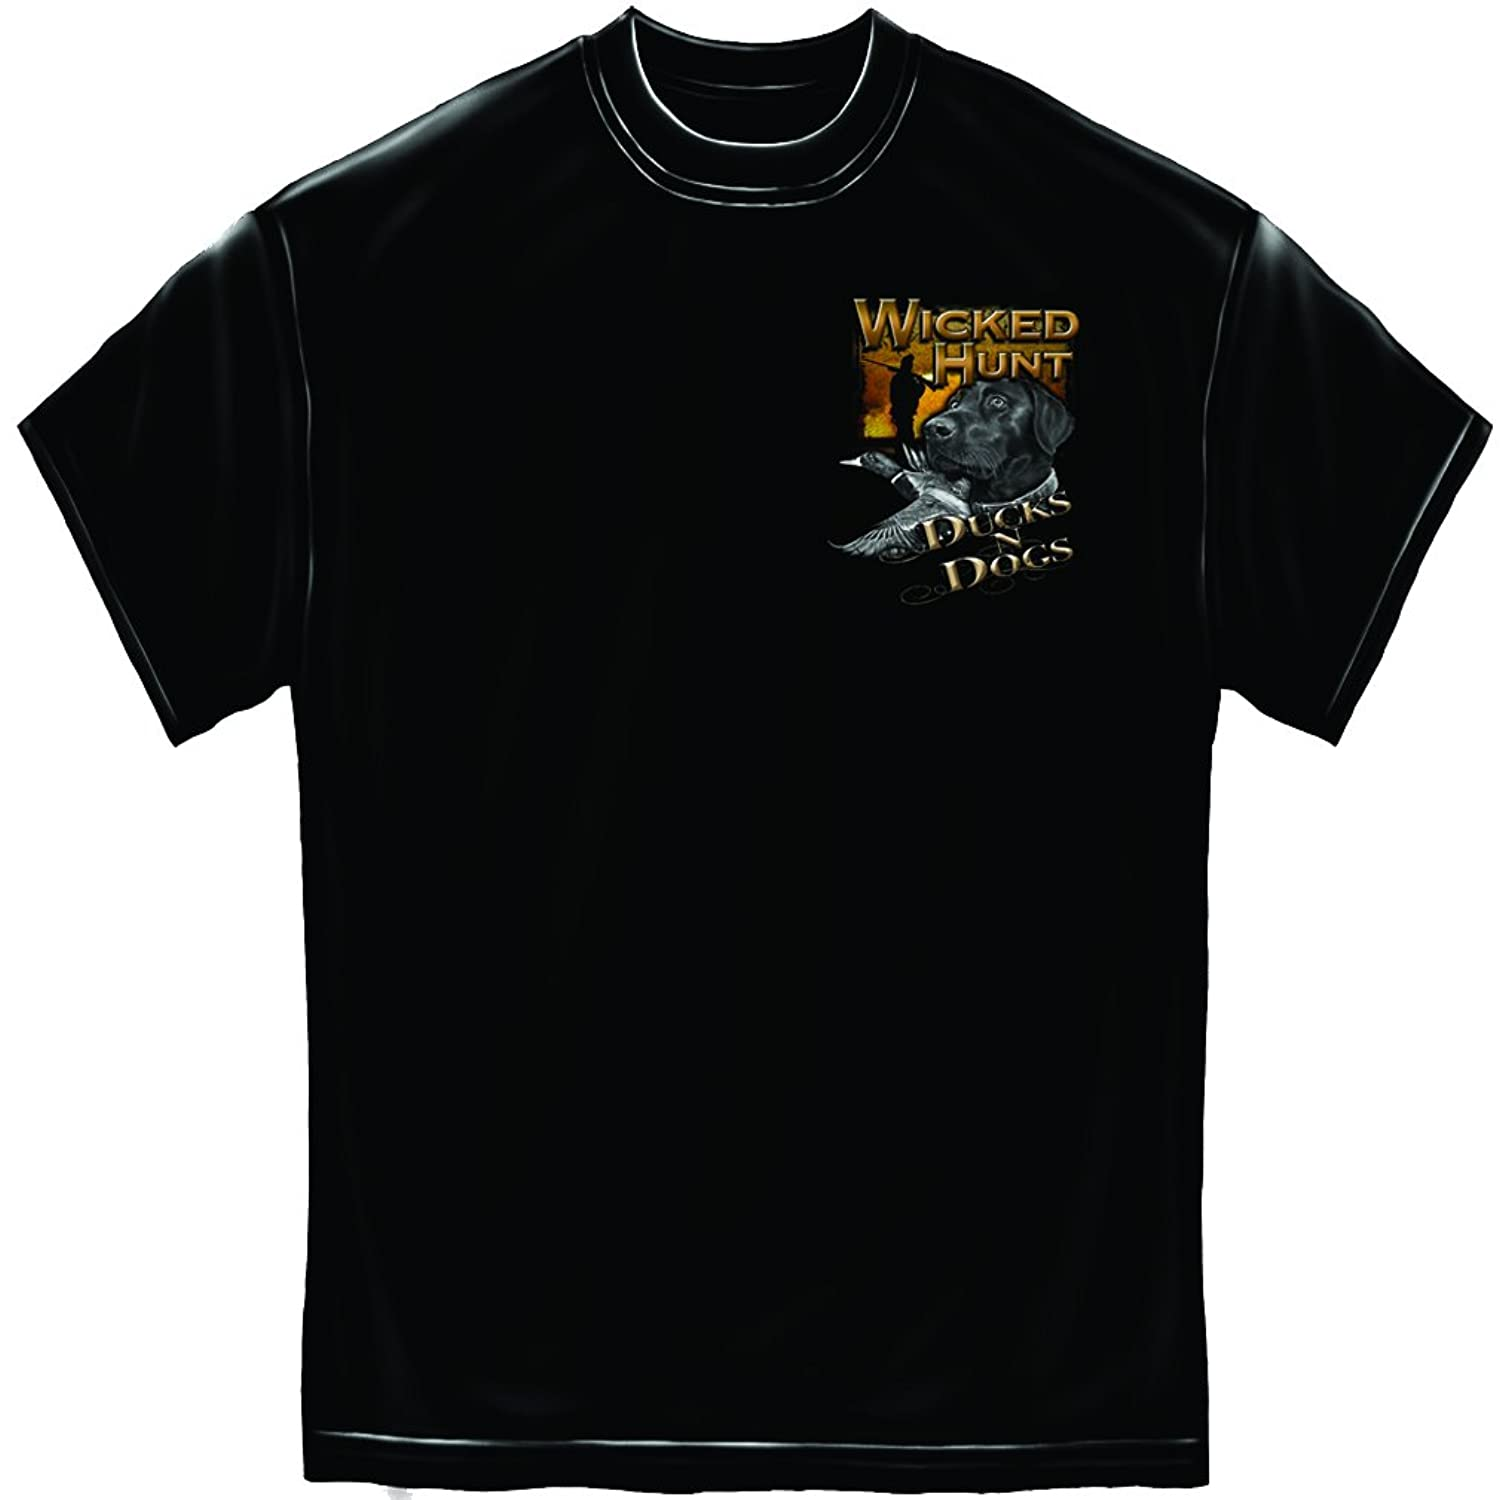 Erazor Bits Wicked Hunt Ducks and Dogs Mens T-Shirt